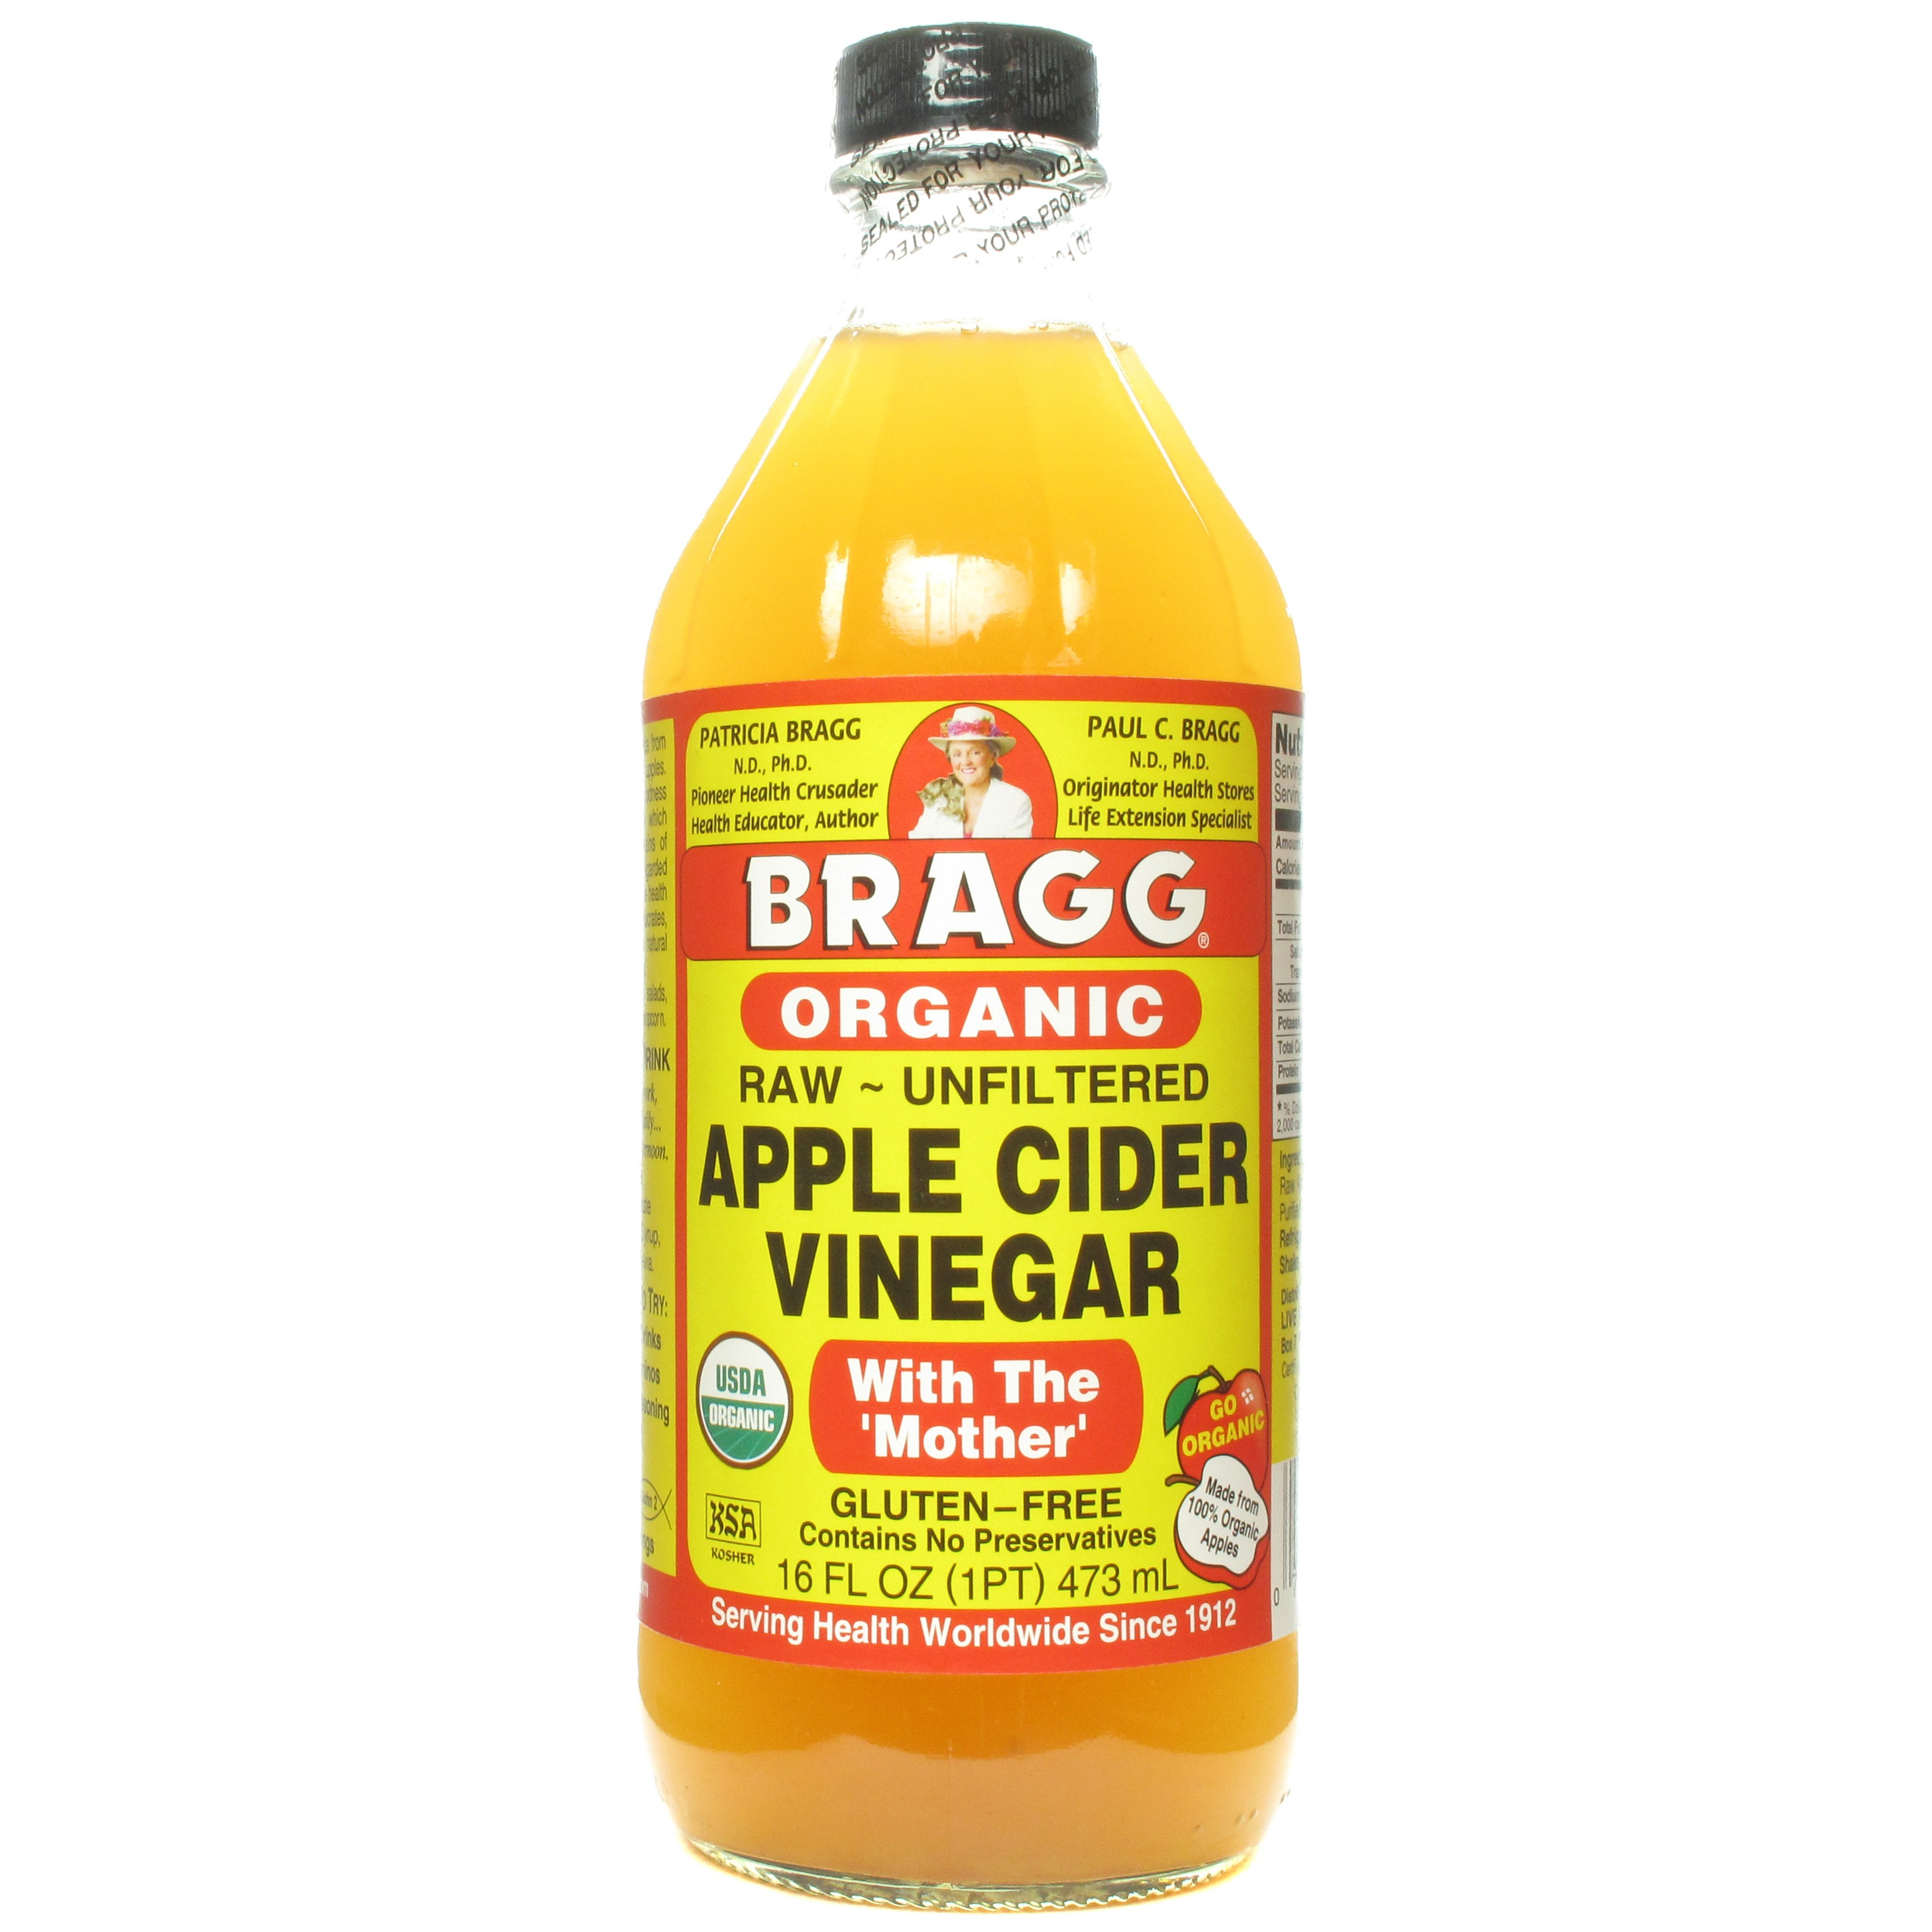 Cleansing Natural Hair with Apple Cider Vinegar